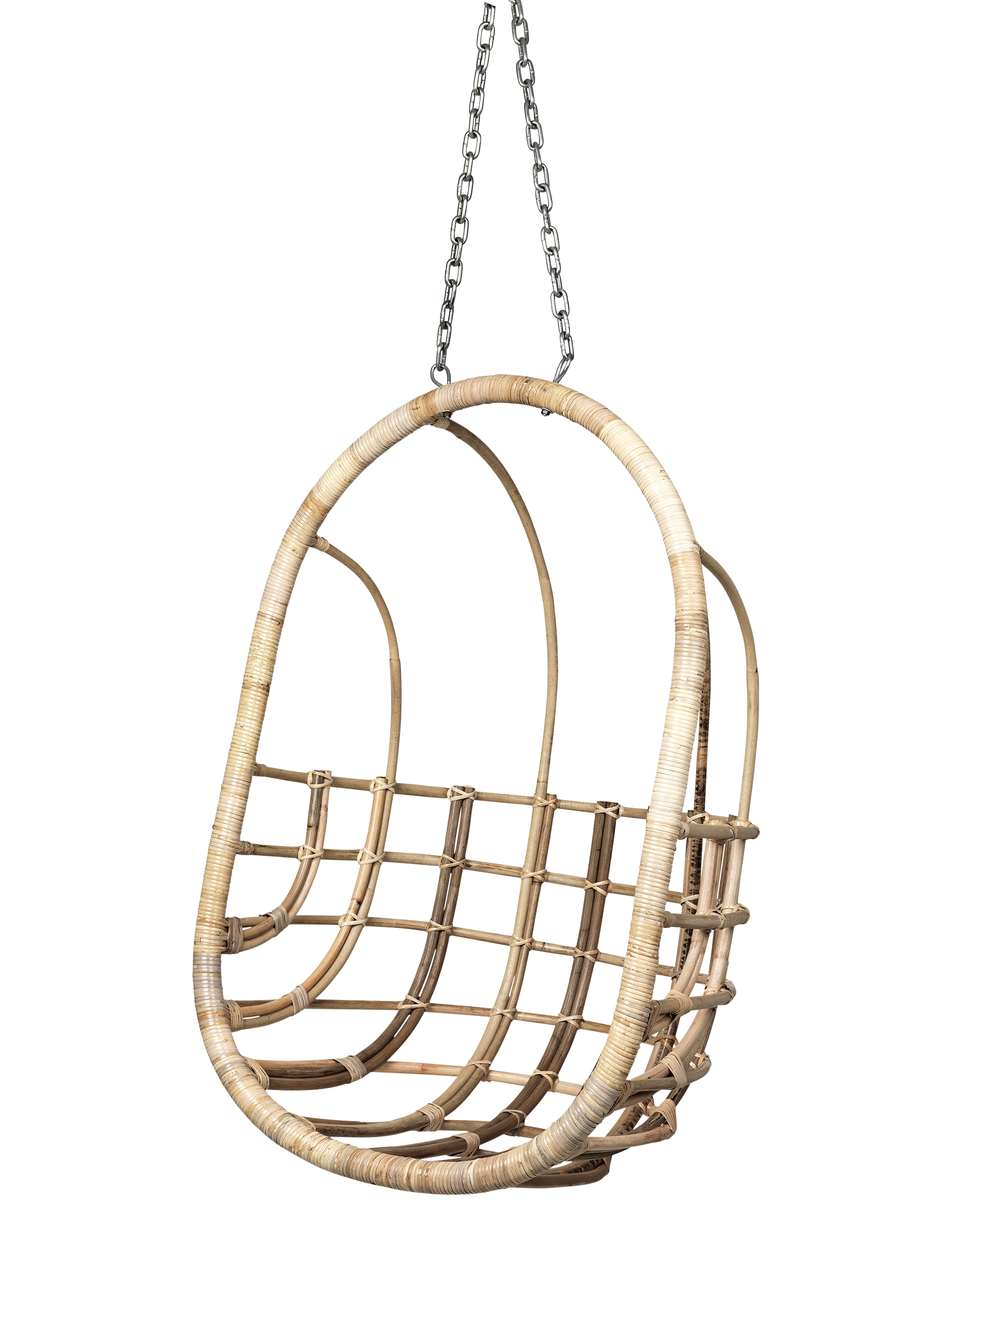 Rattan Hanging Chair Hanging Rattan Chair Indoor